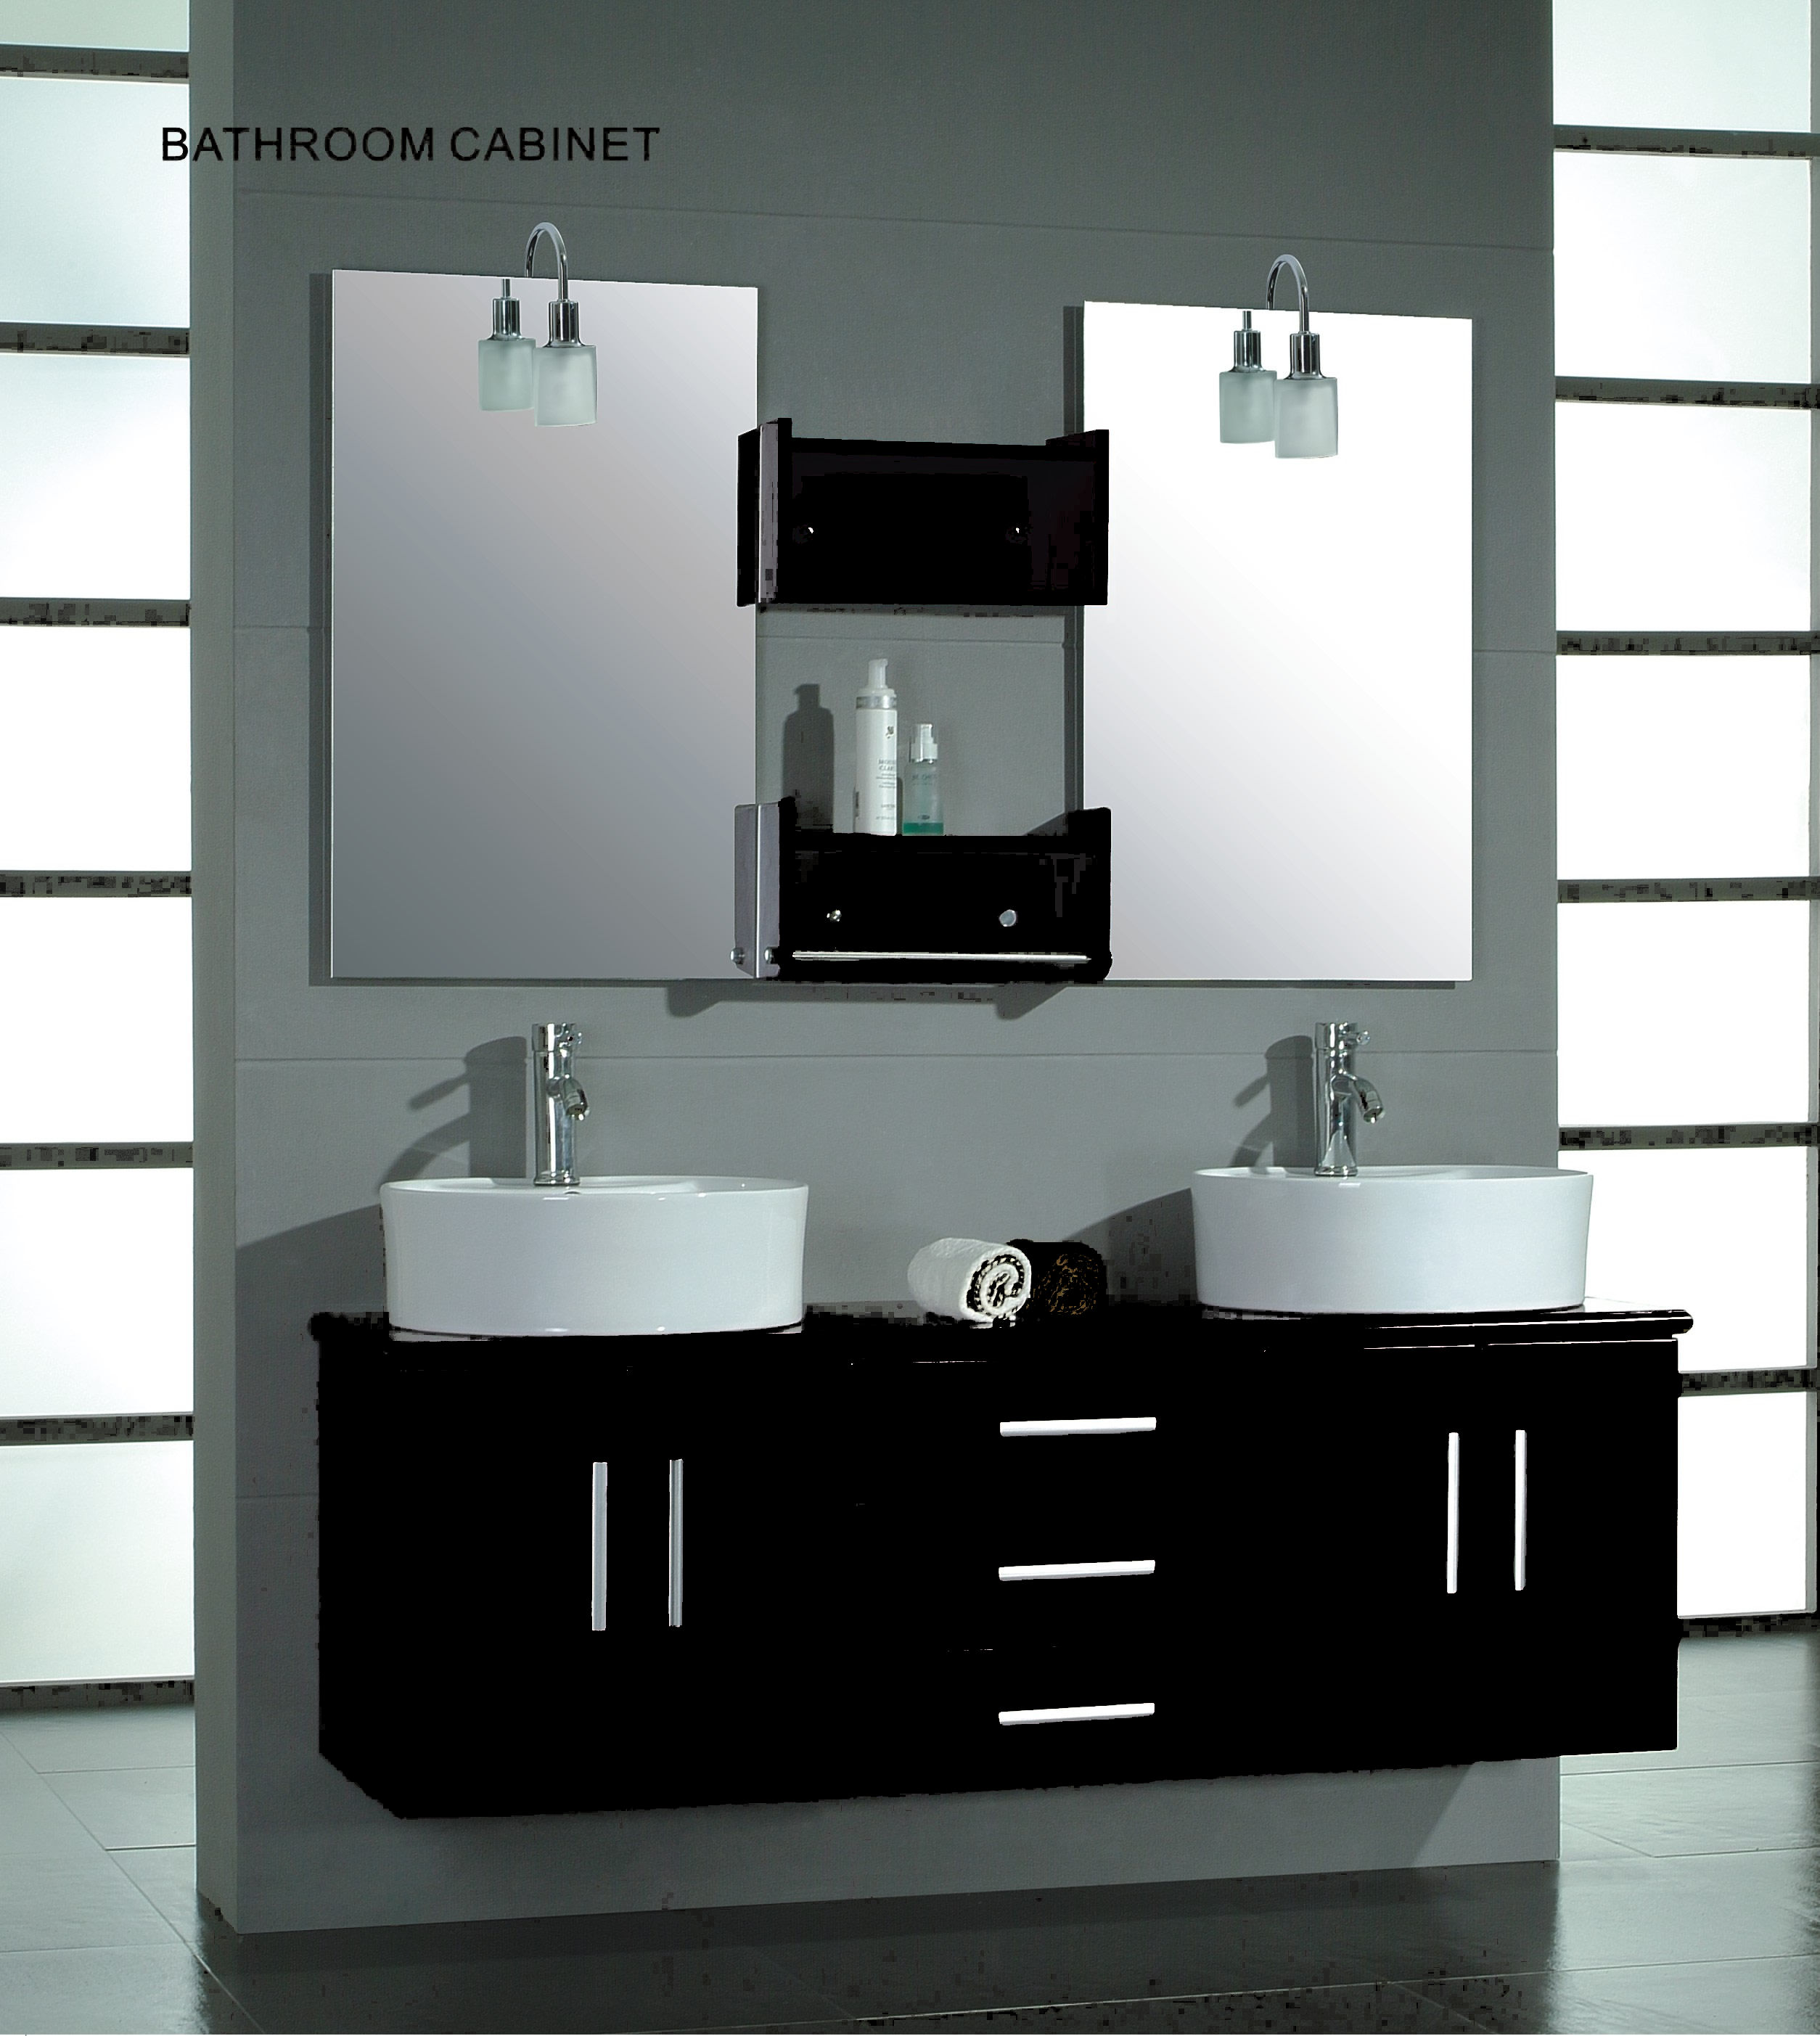 mount inch bathroom wall solid set mounted cambridge double vanity wood cabinet